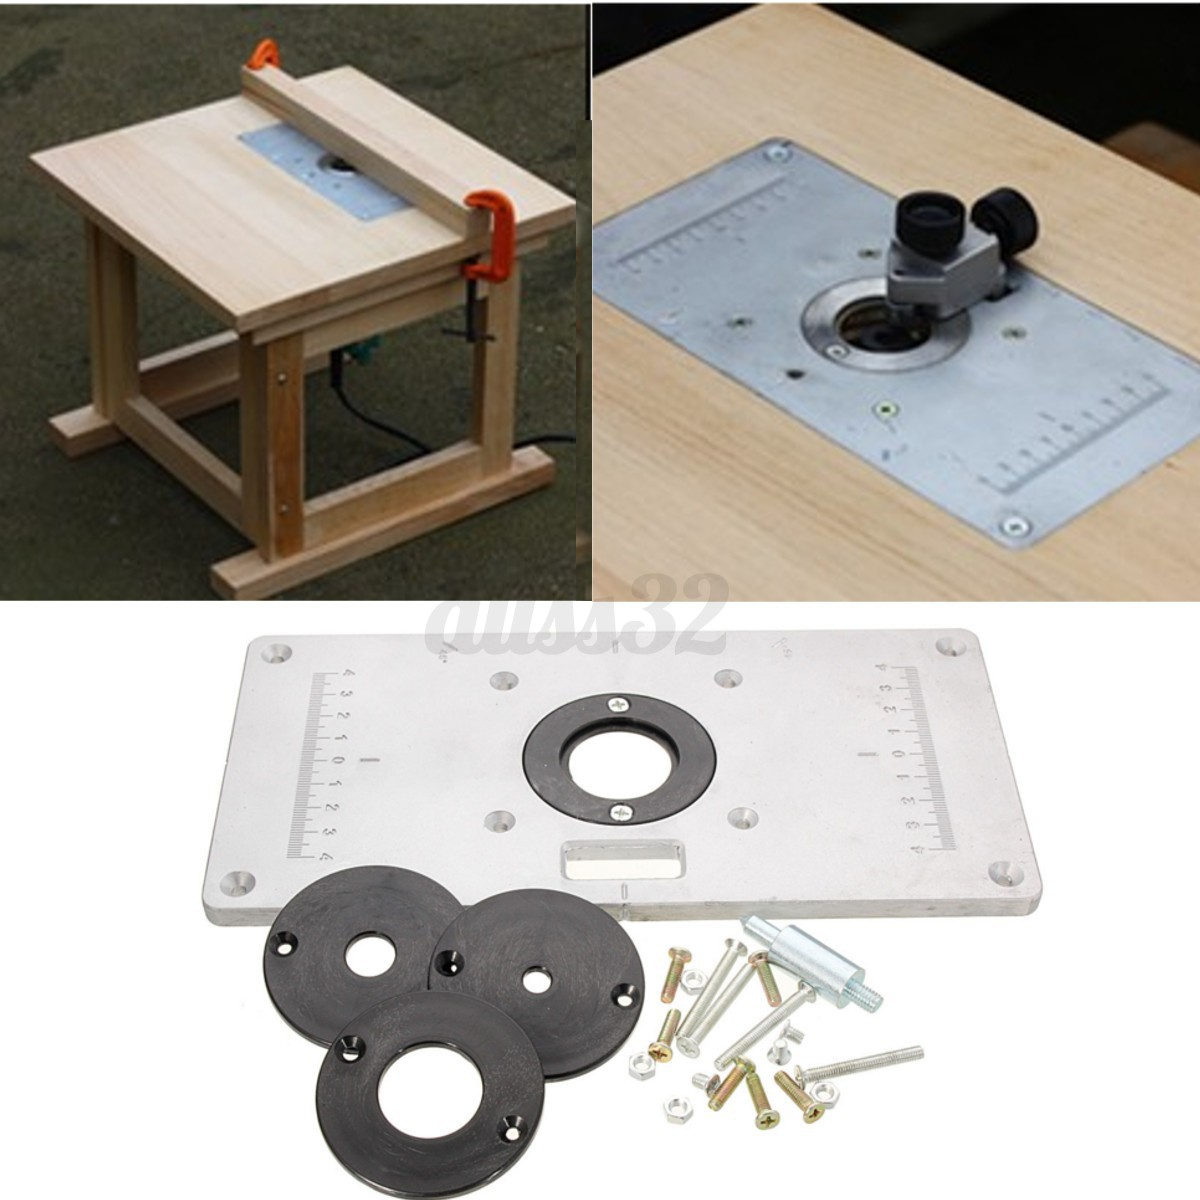 Aluminum metal sliver router table insert plate insert rings diy detail image keyboard keysfo